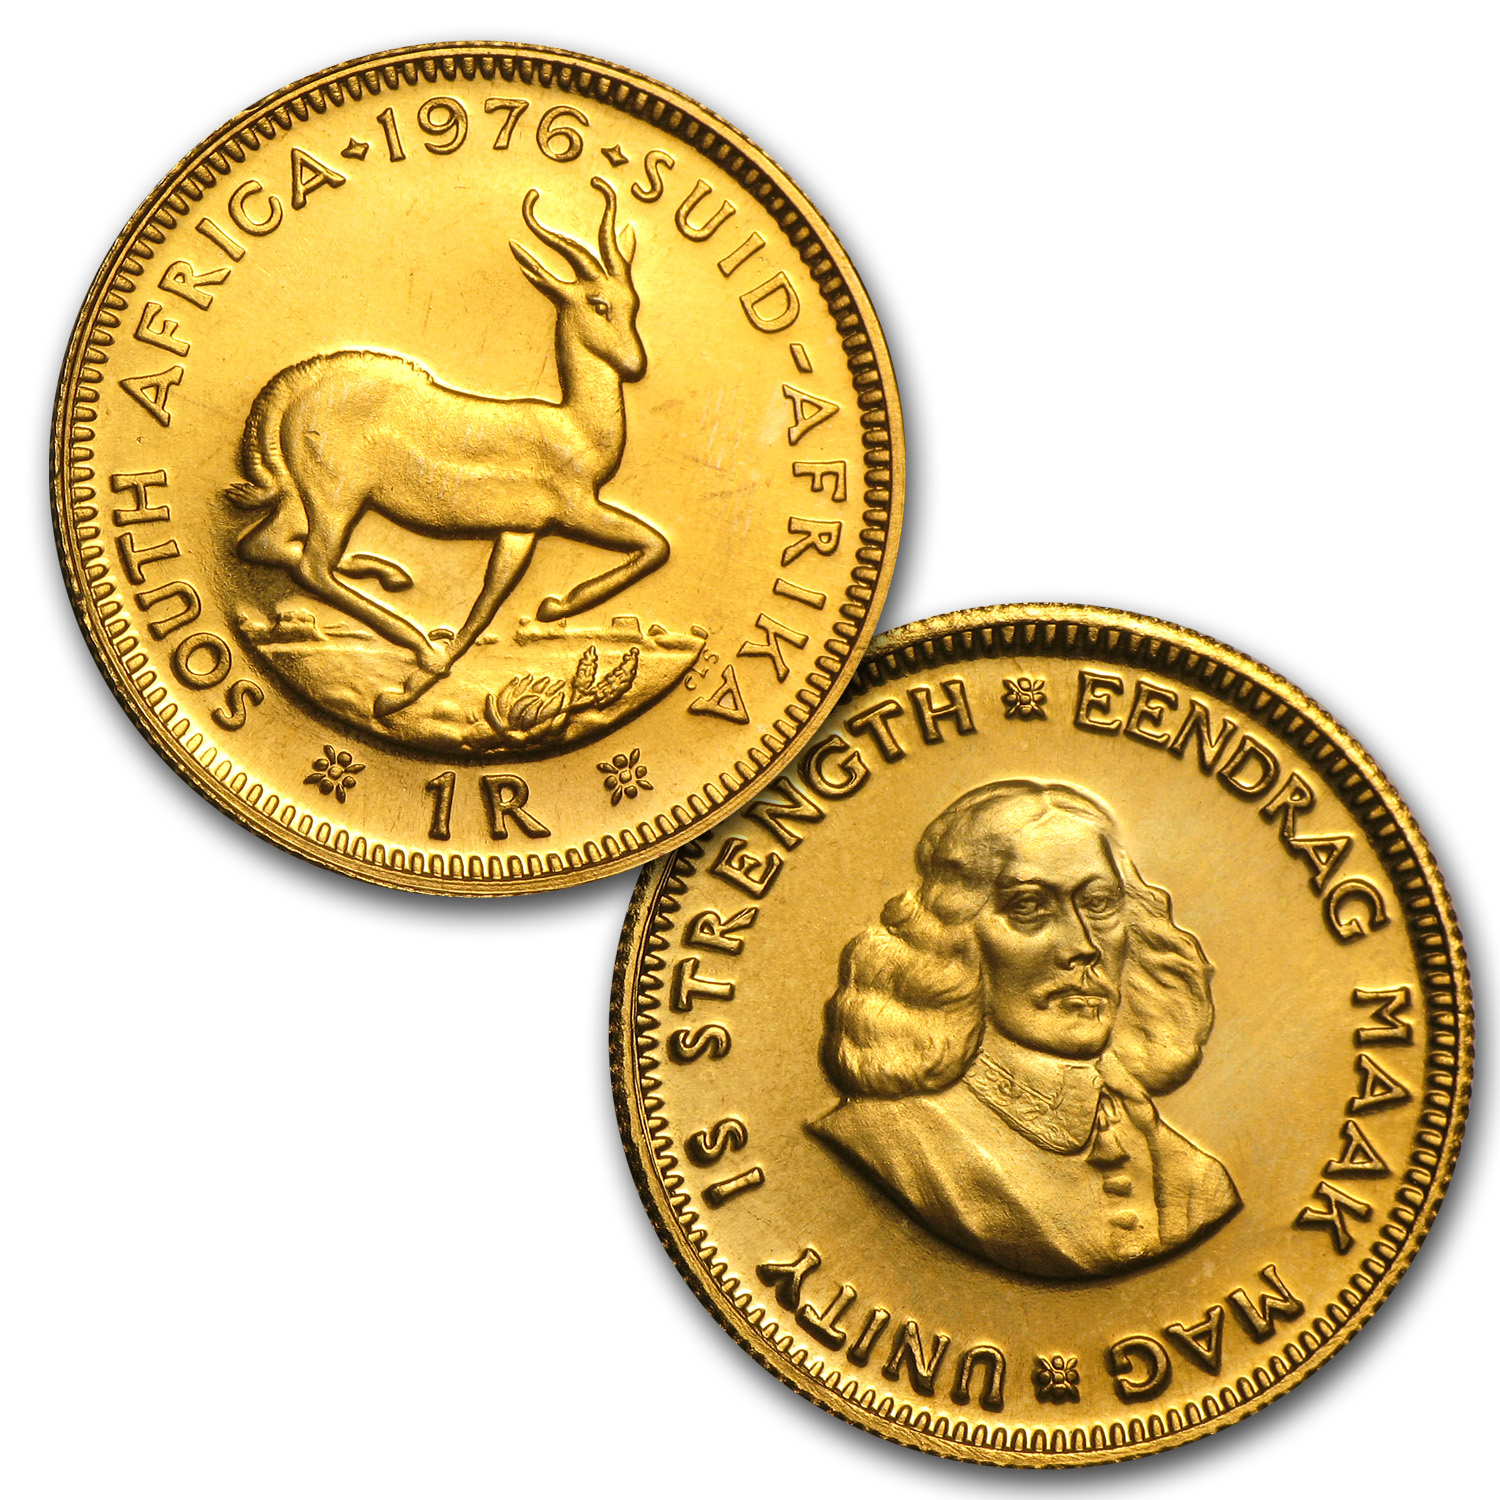 1976 South African Gold Proof Set (2-Coin)